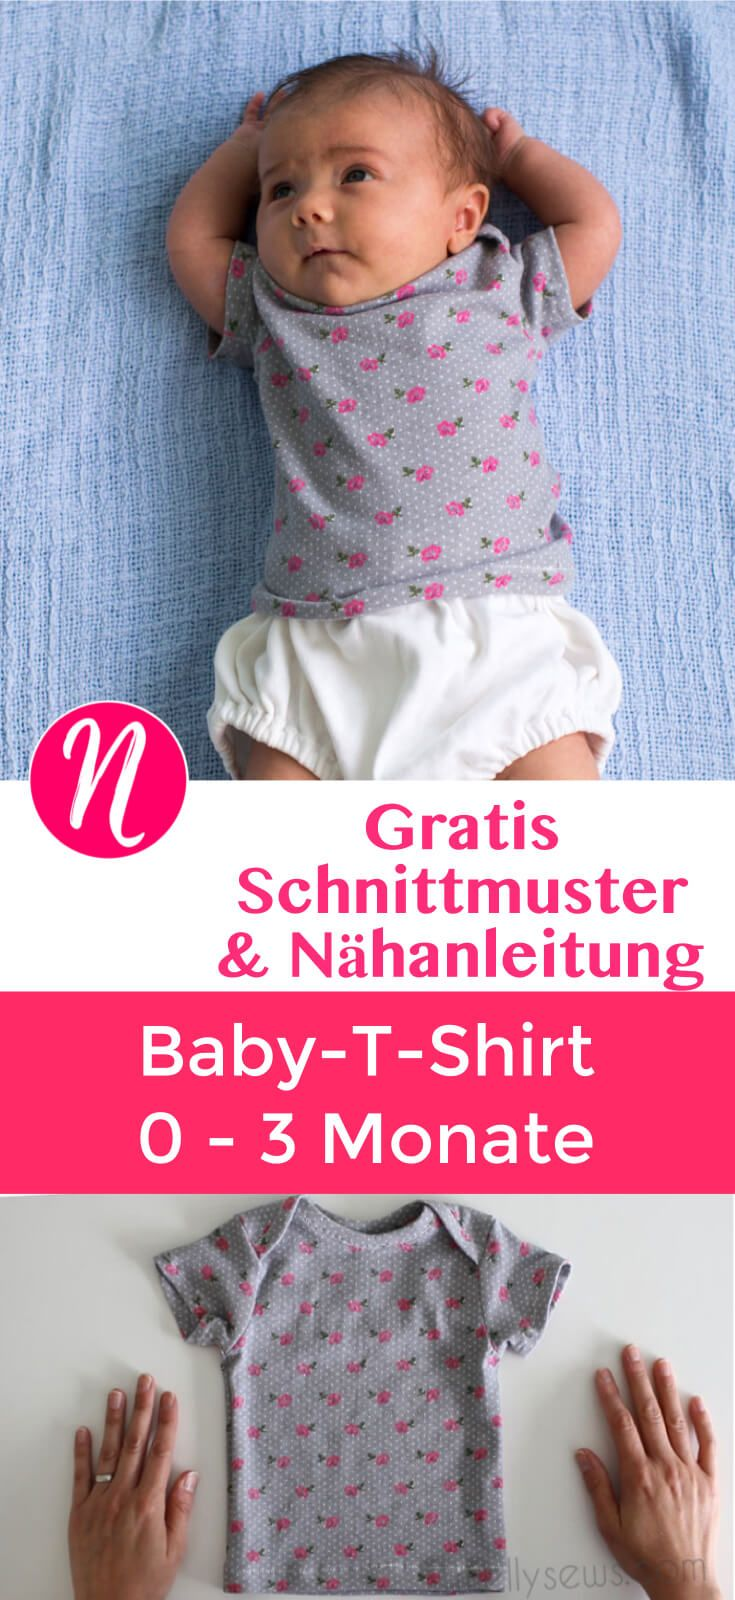 Baby T-Shirt - Freebook | Things to do | Pinterest | Schnittmuster ...